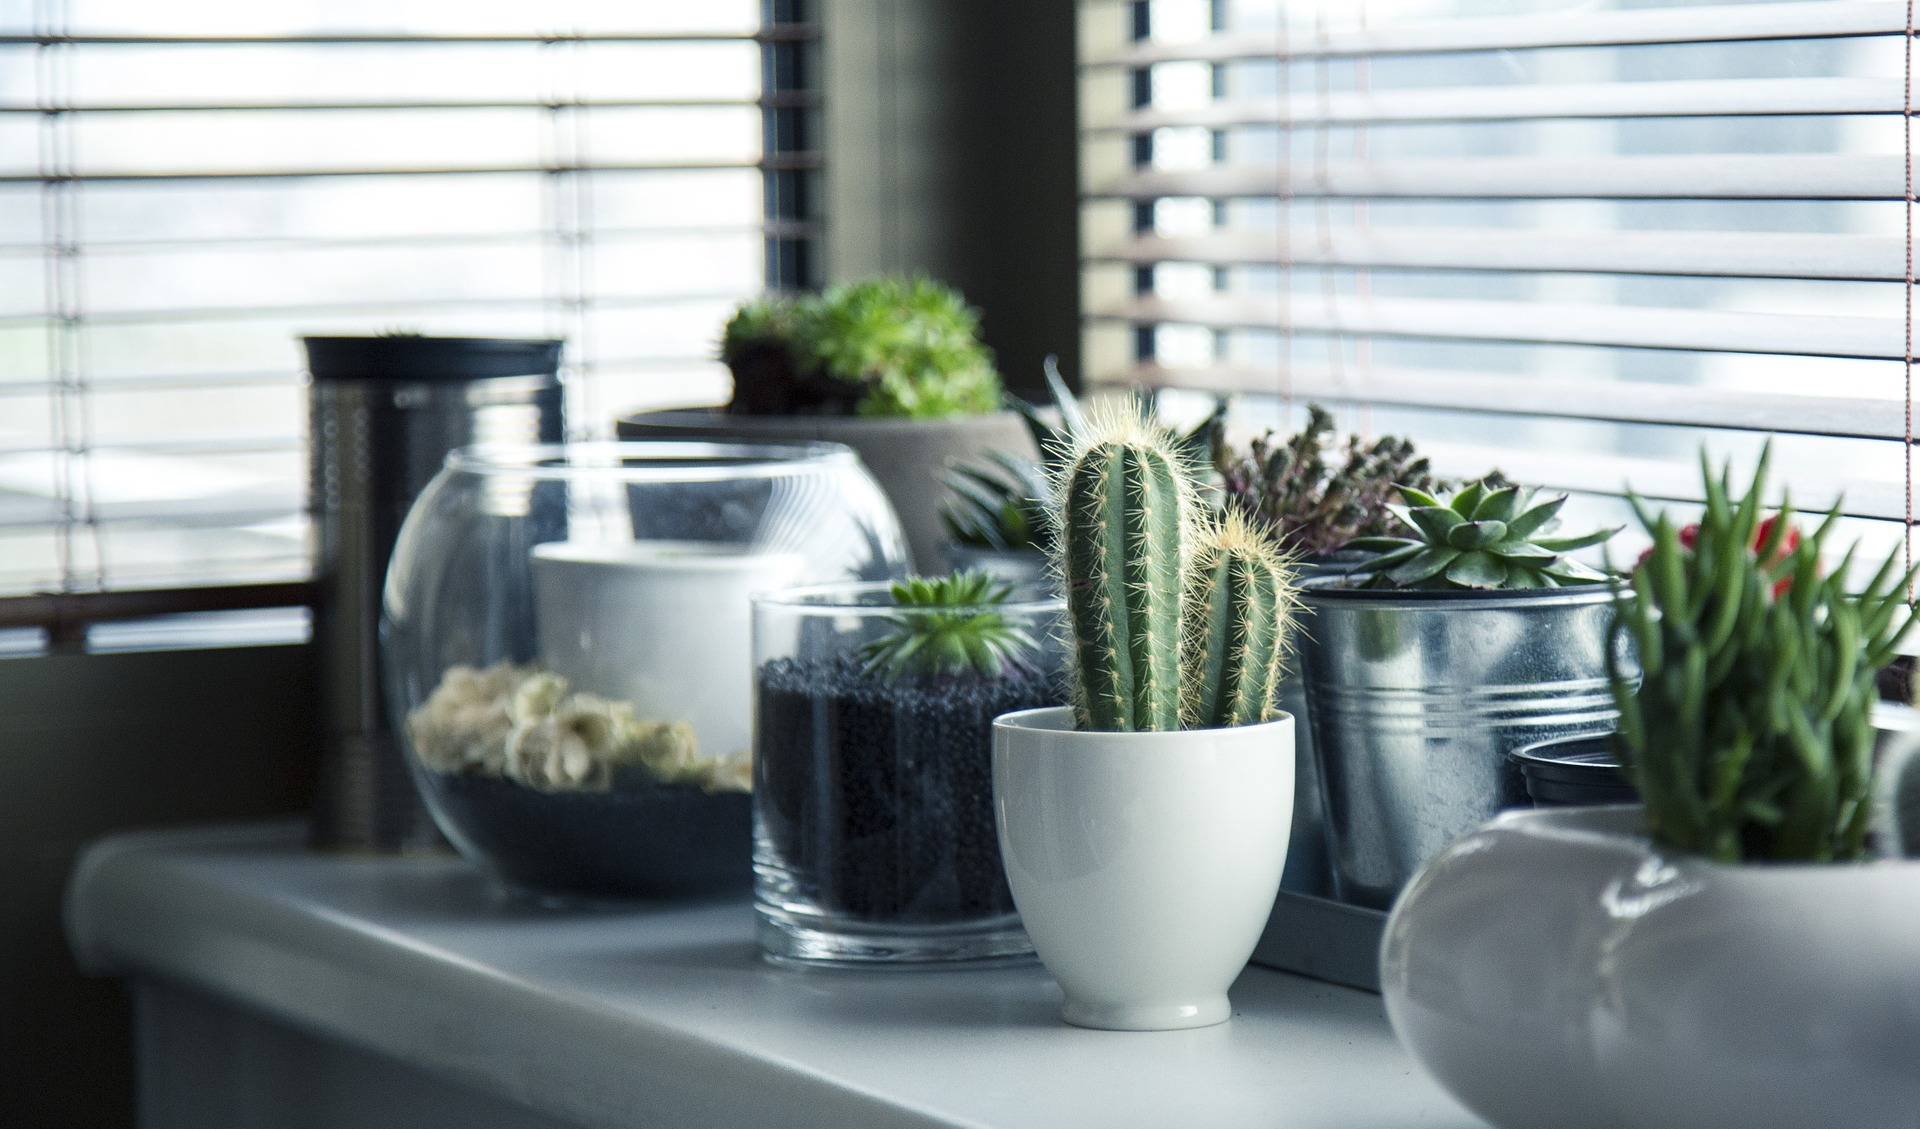 6 Plants That Will De-stress Your Home and Purify The Air